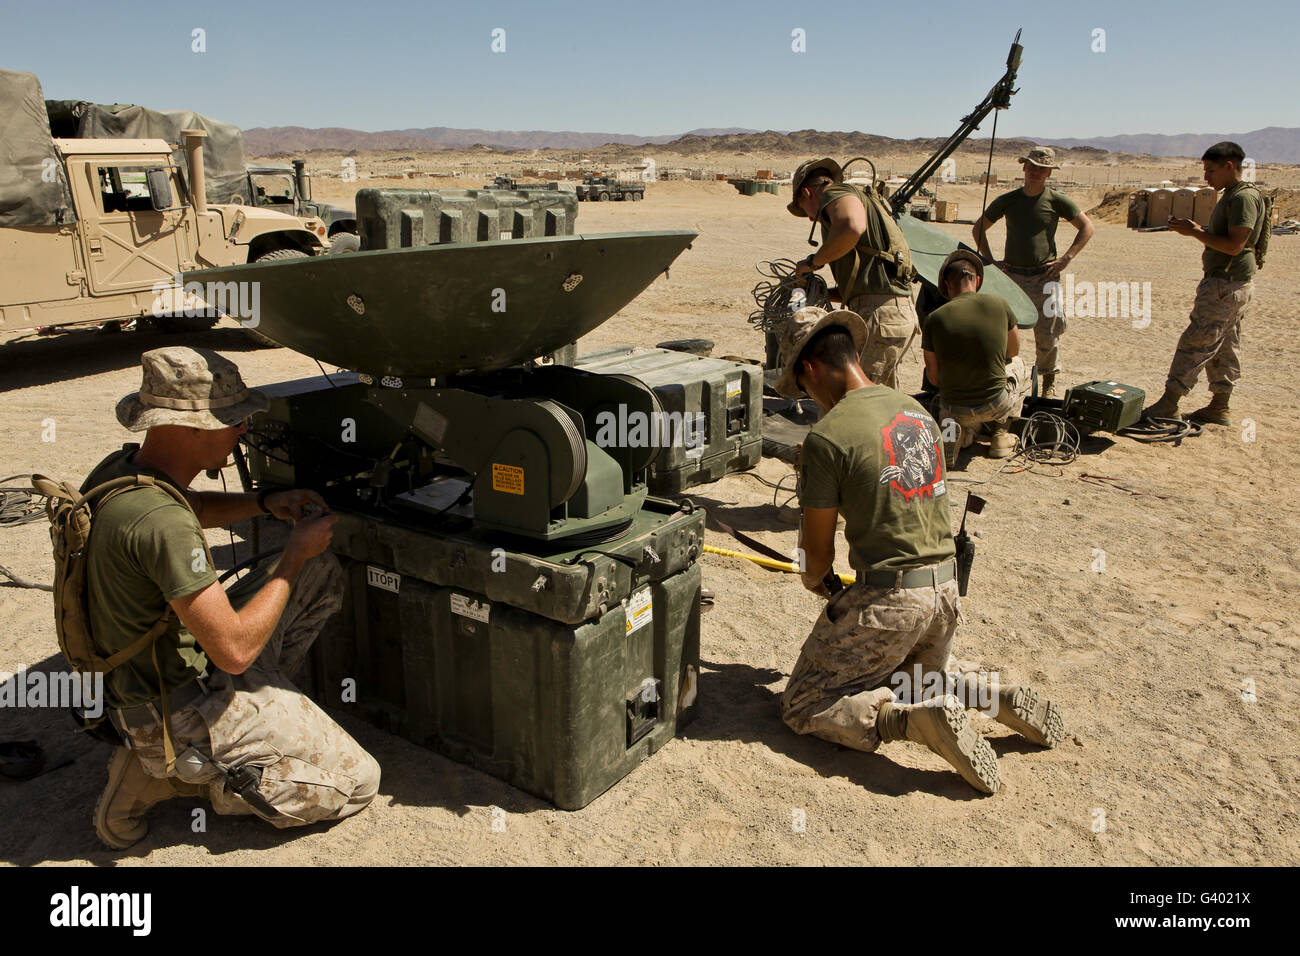 U.S. Marines assemble a satellite dish. - Stock Image